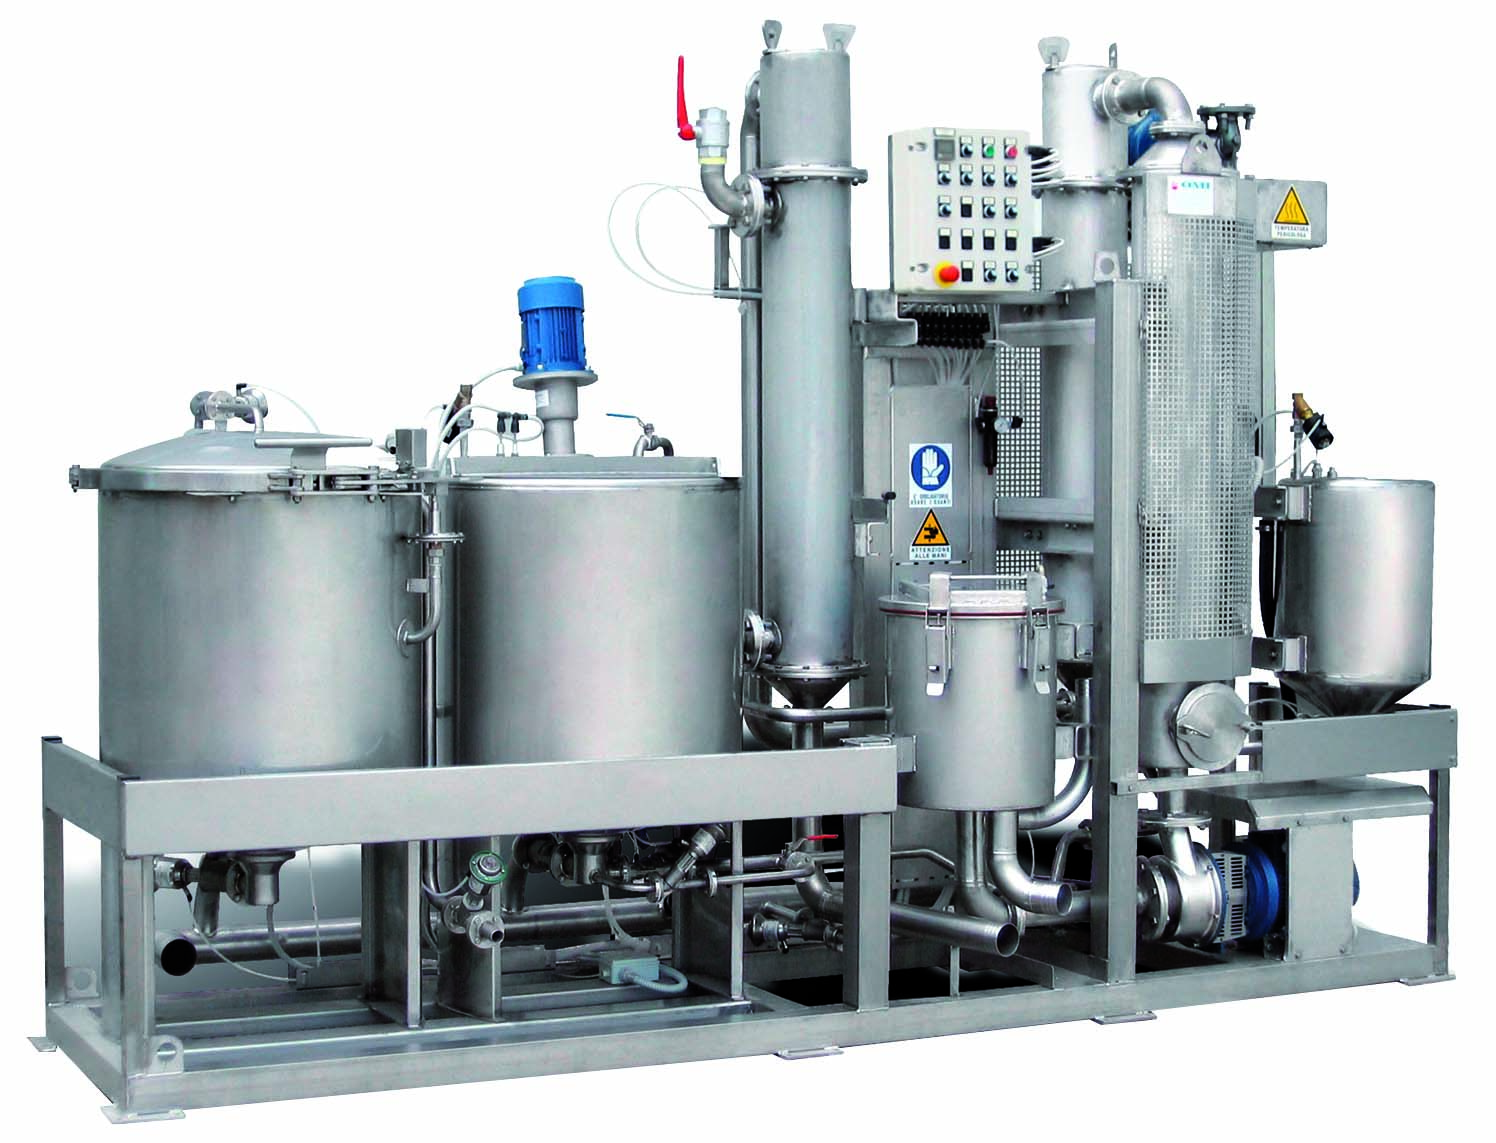 SC-P4-V2-R1-C1-S1-B1/B2: COLOR KITCHEN FOR GARMENT DYEING | OMI Wash